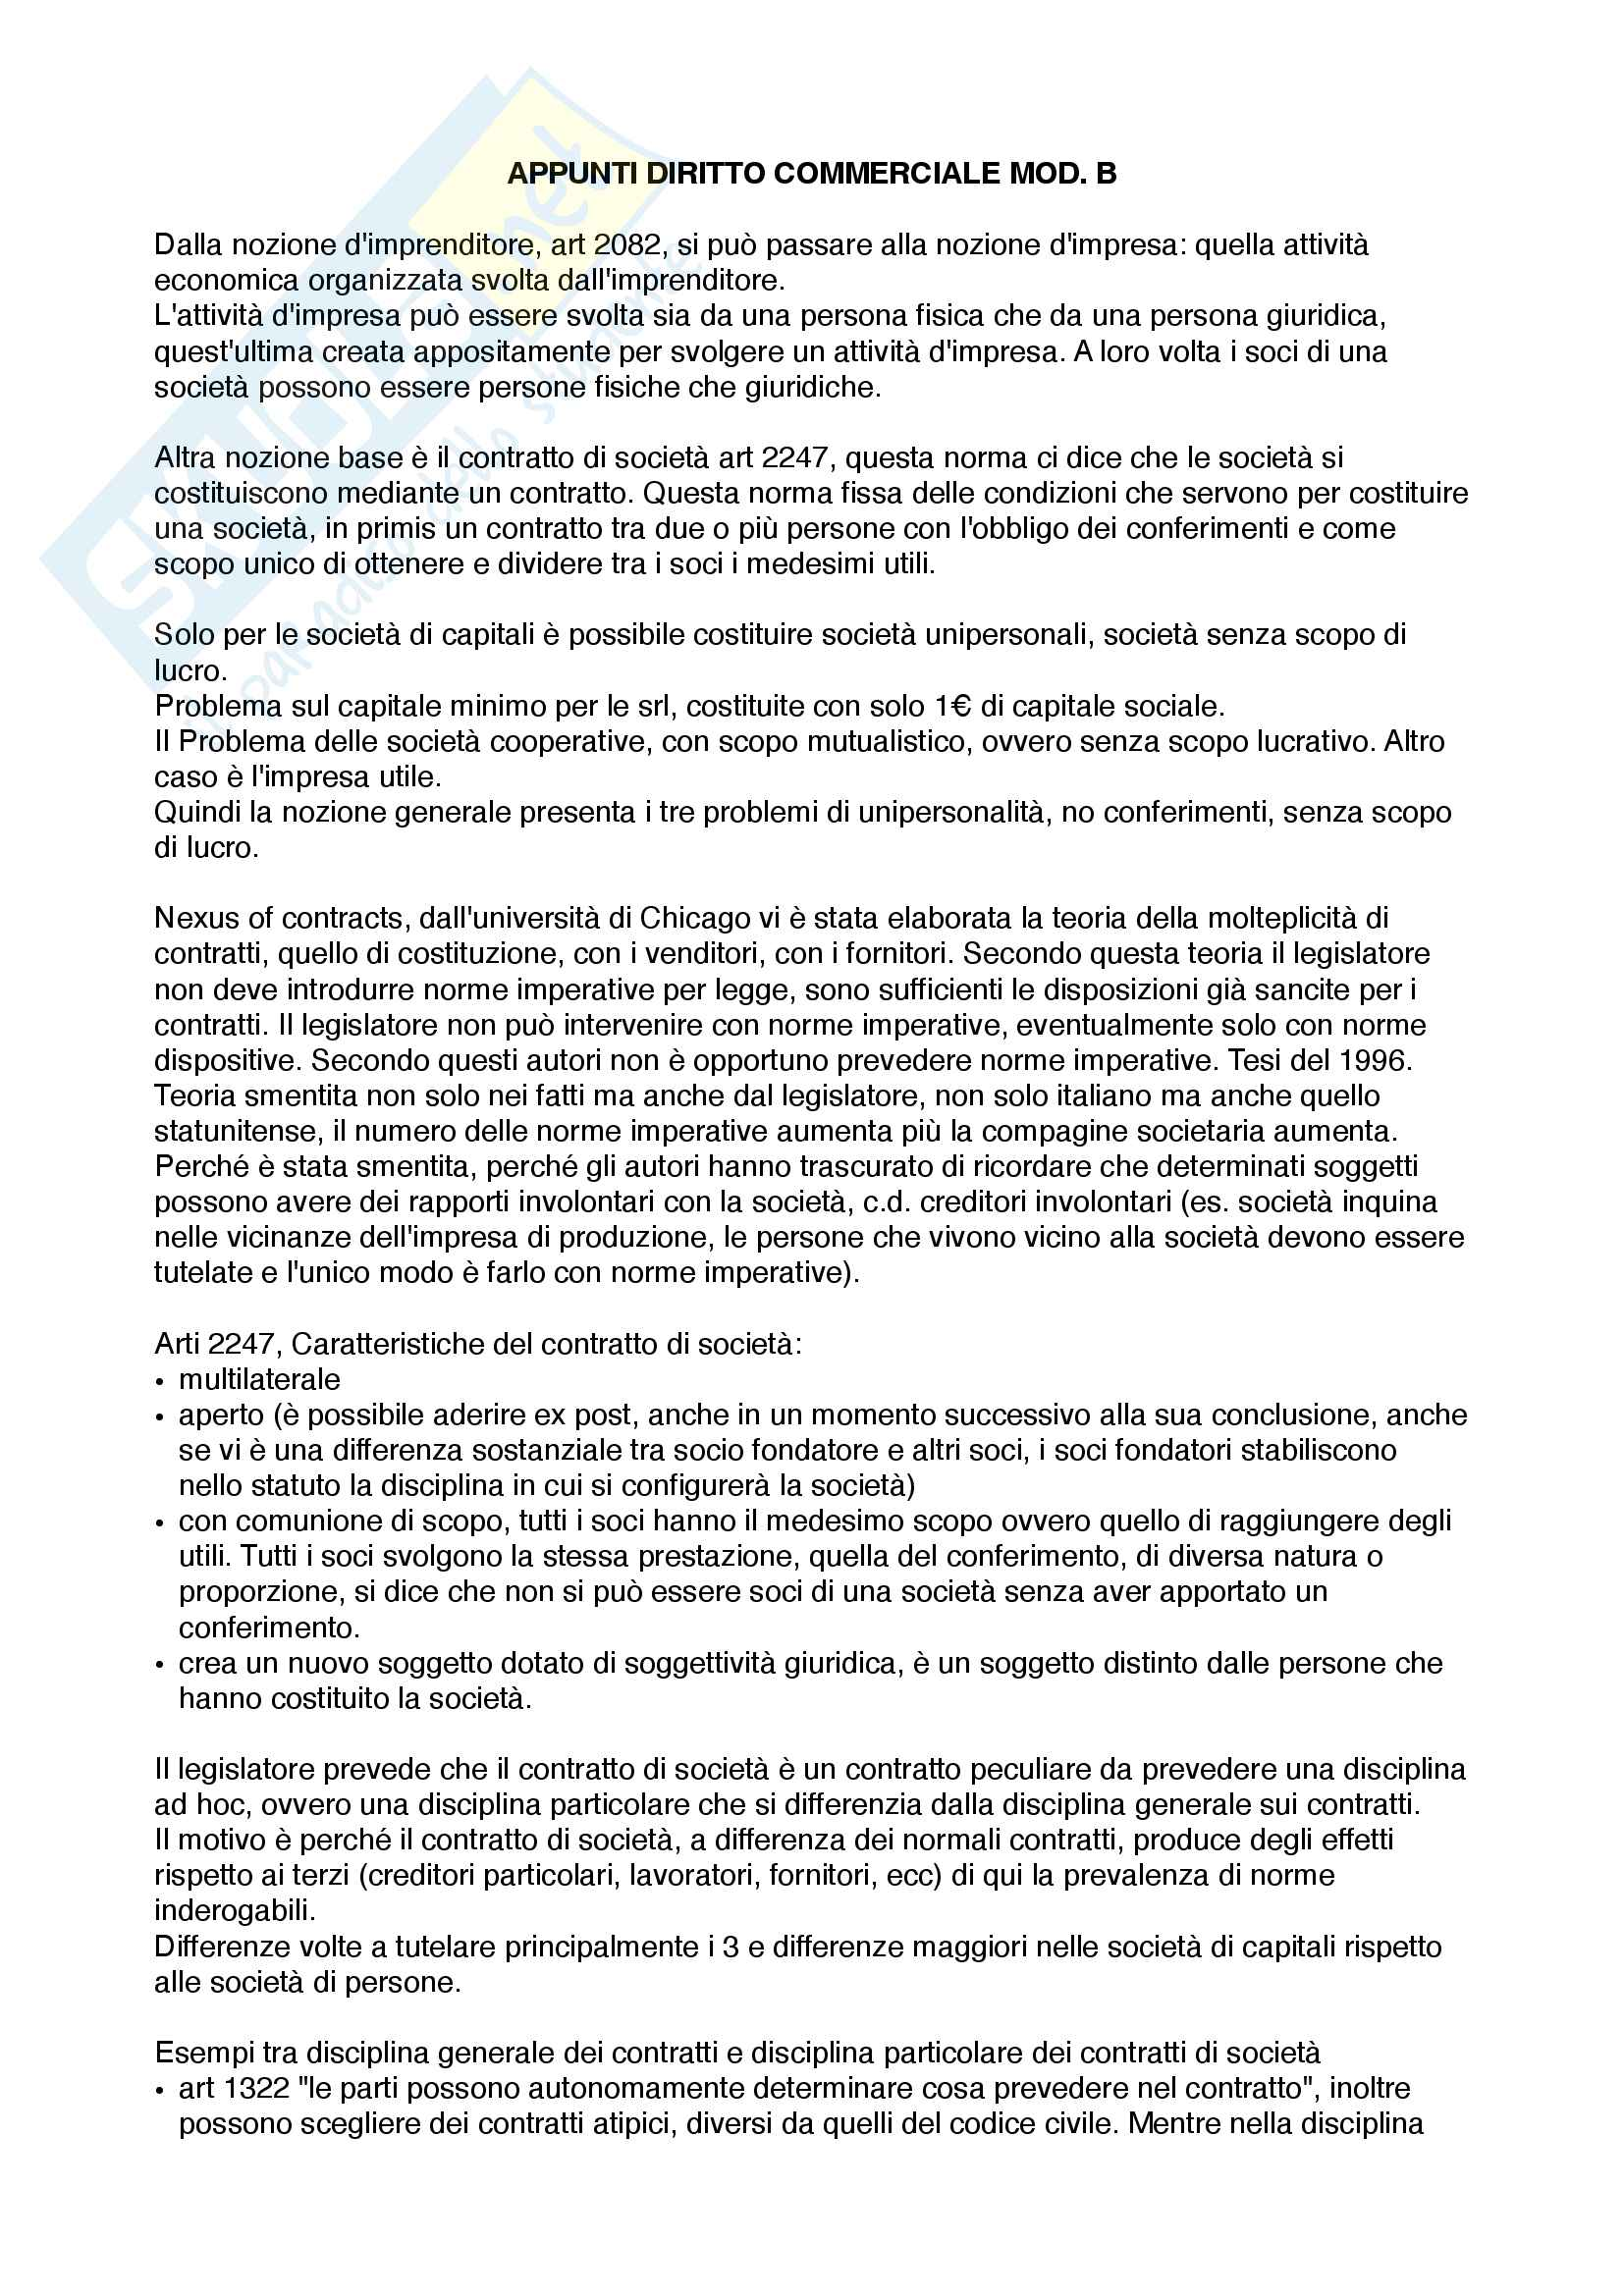 Appunti commerciale mod b